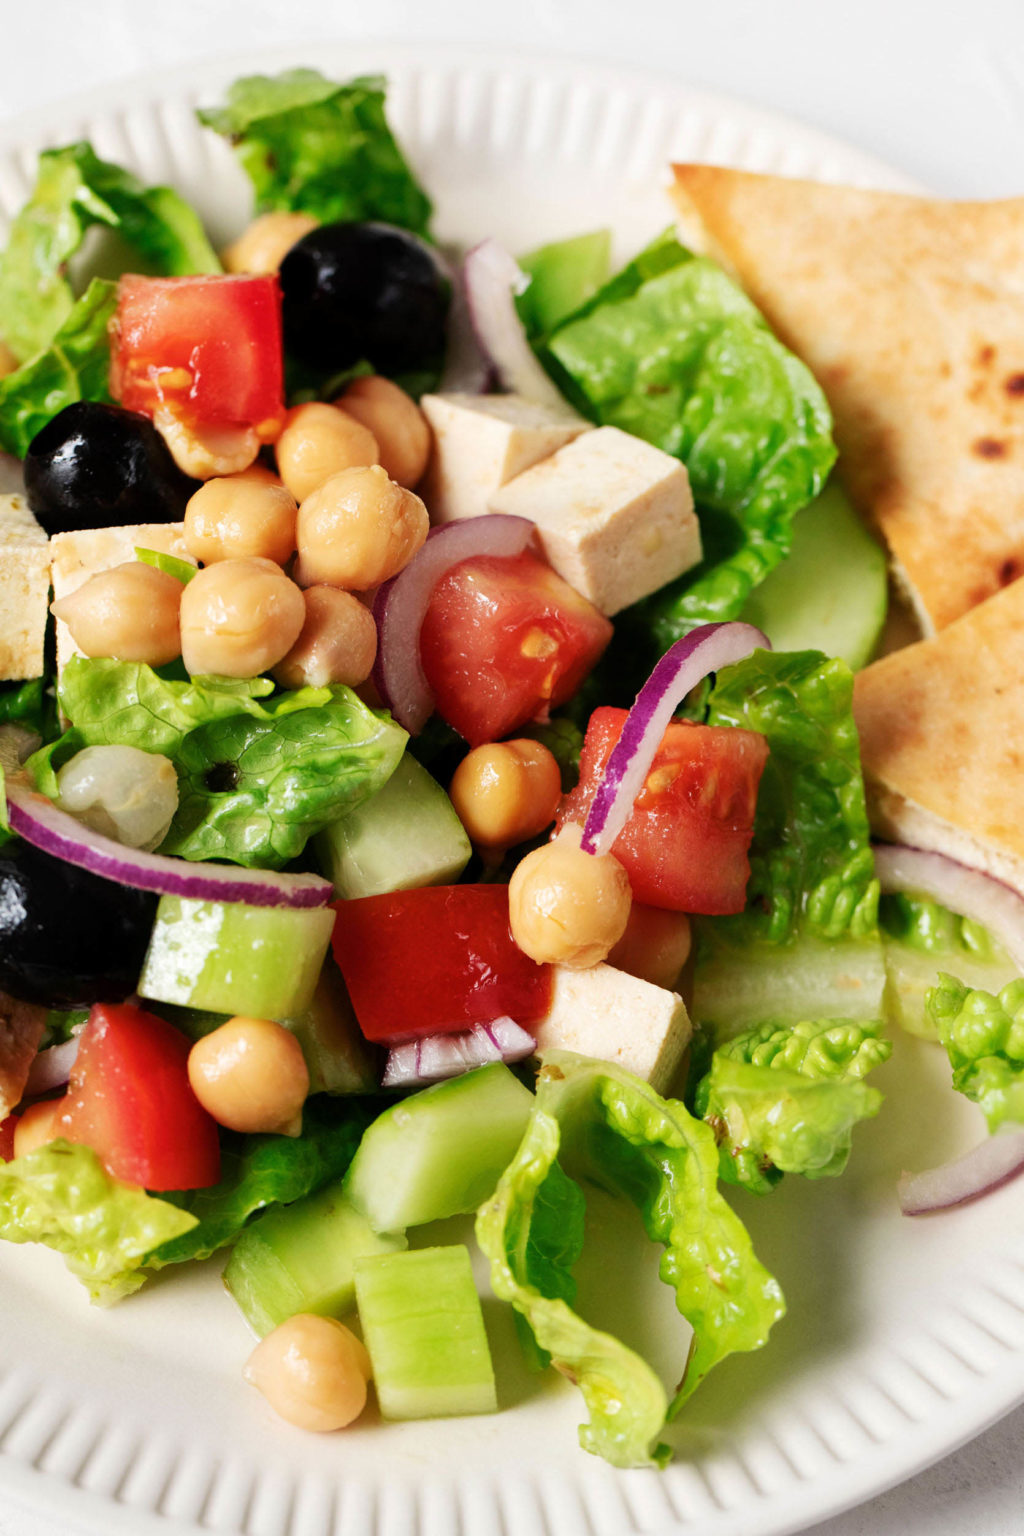 A zoomed in, overhead image of a fresh, summery salad with romaine, tofu, chickpeas, and tomatoes.